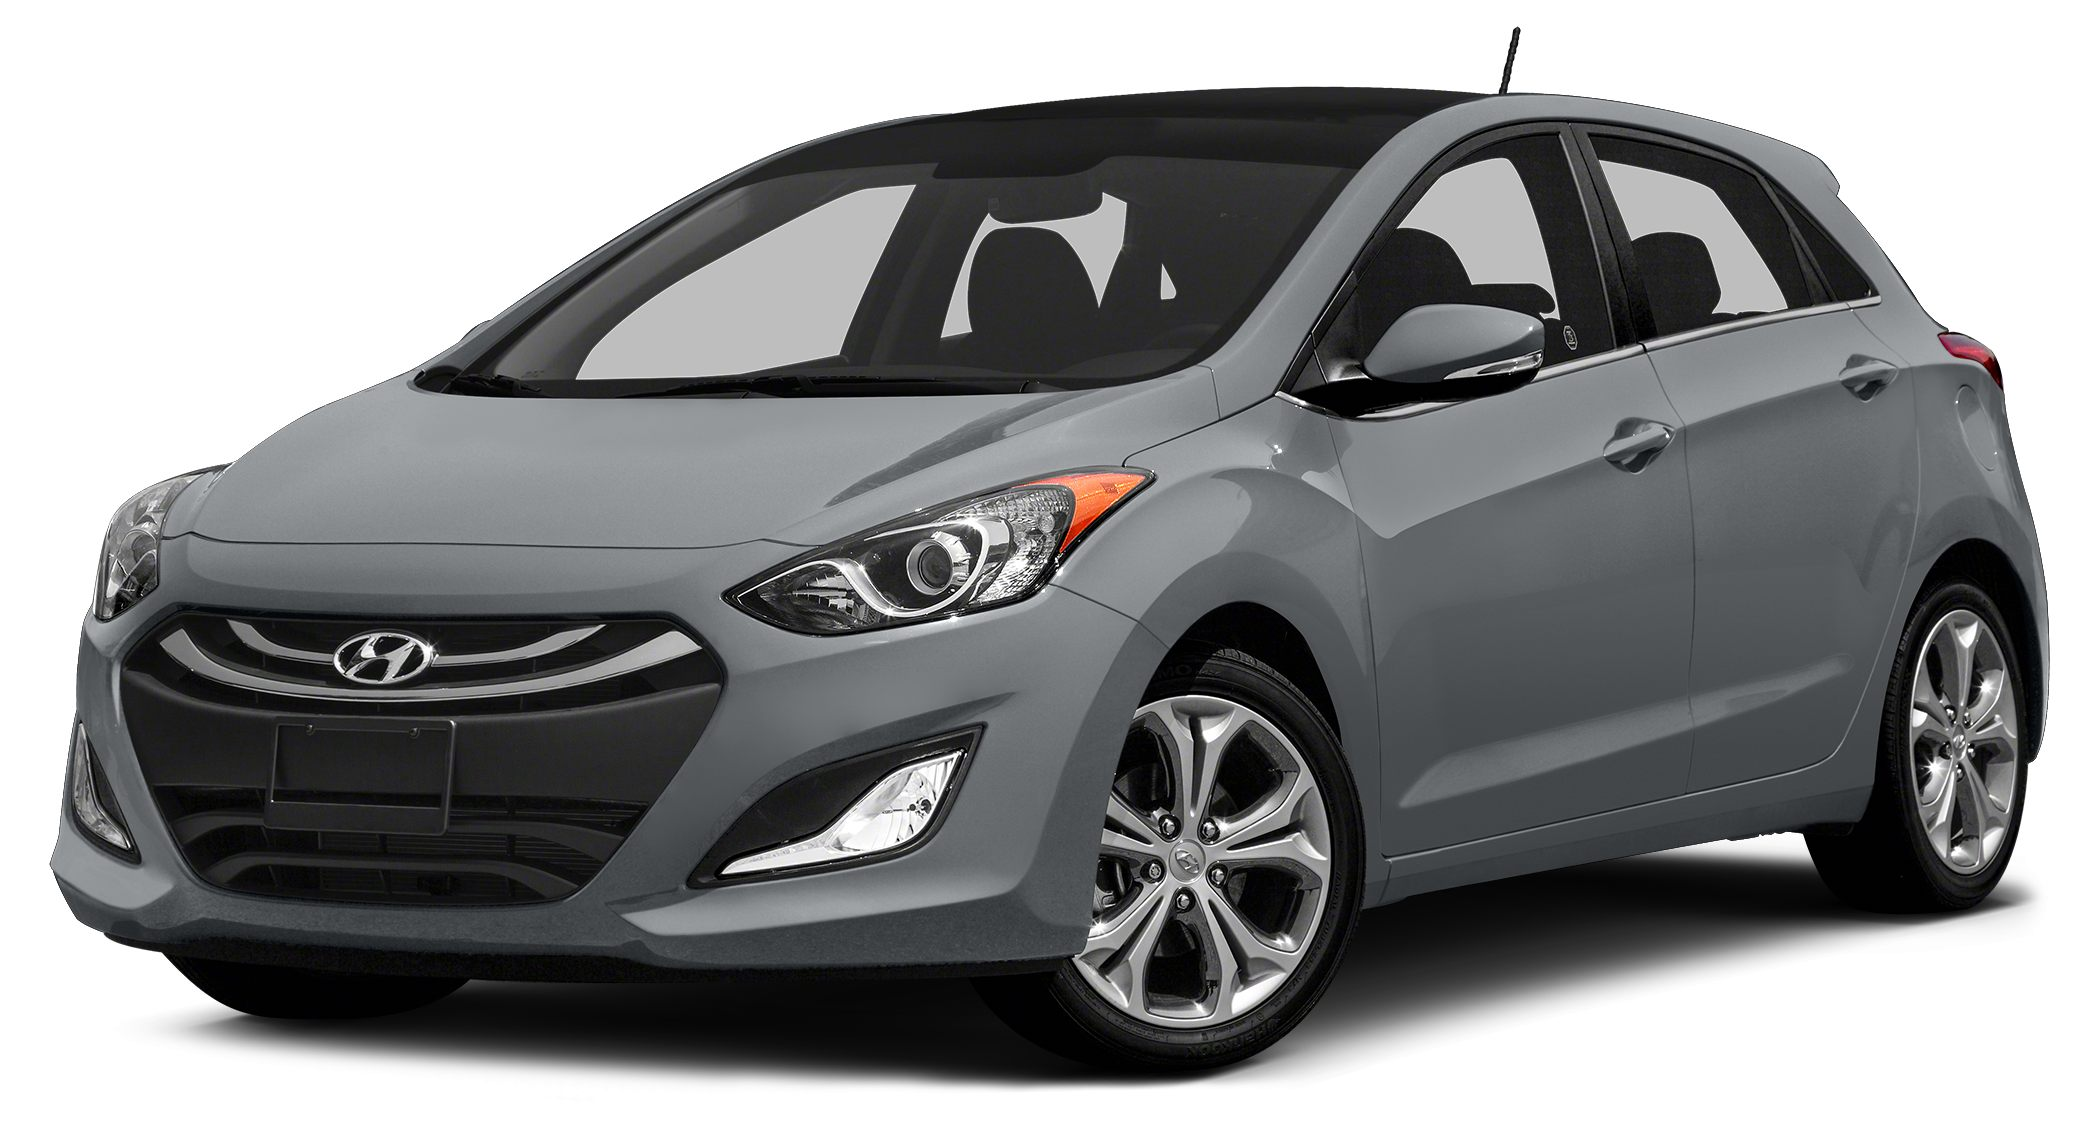 2013 Hyundai Elantra GT Base Lifetime Engine Warranty at NO CHARGE on all pre-owned vehicles Court